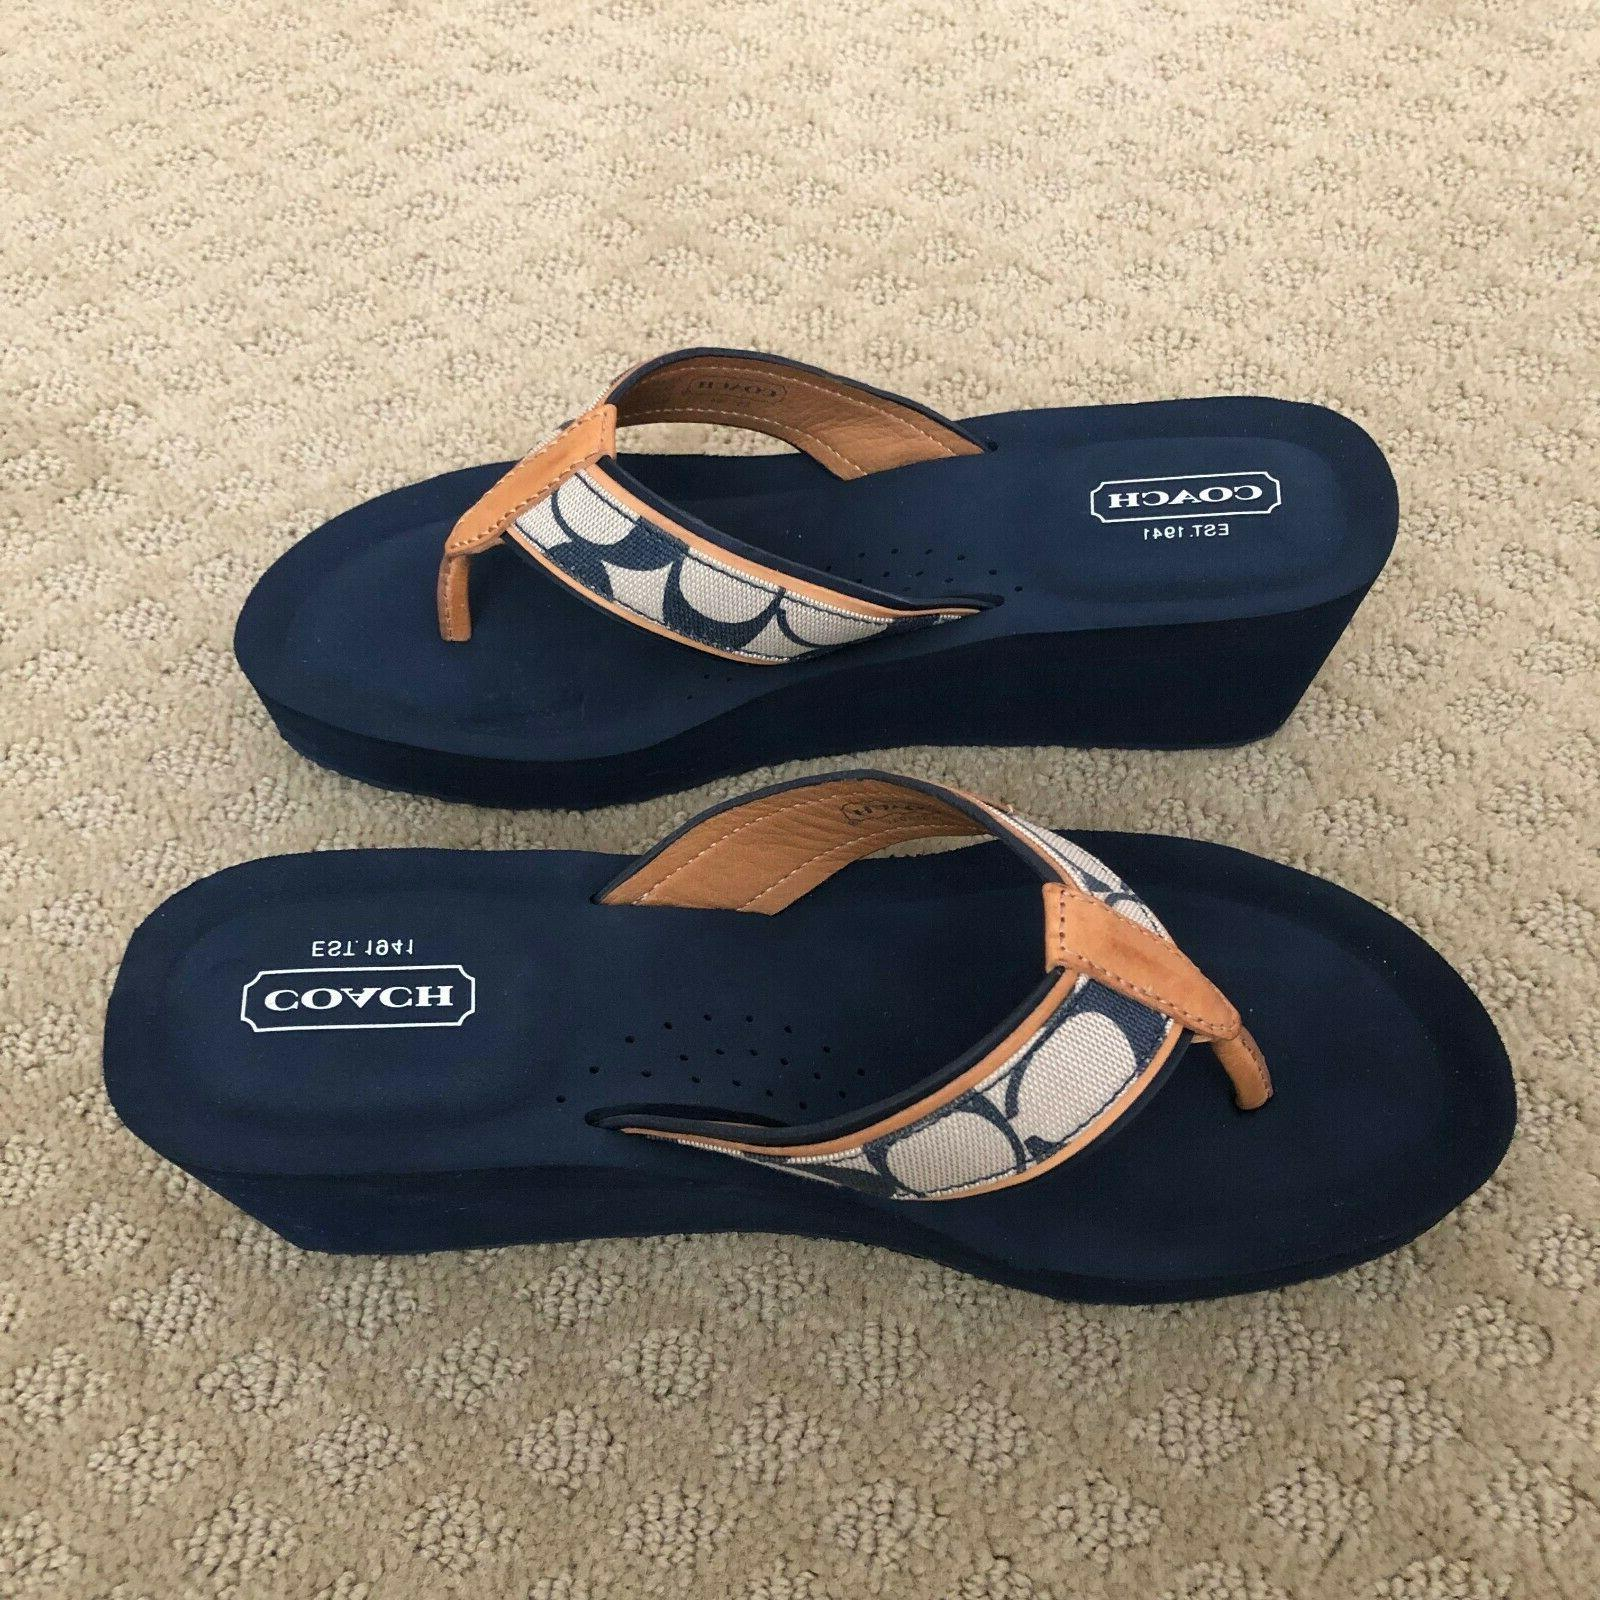 NEW w-Tan Leather Flip Sandals - Size